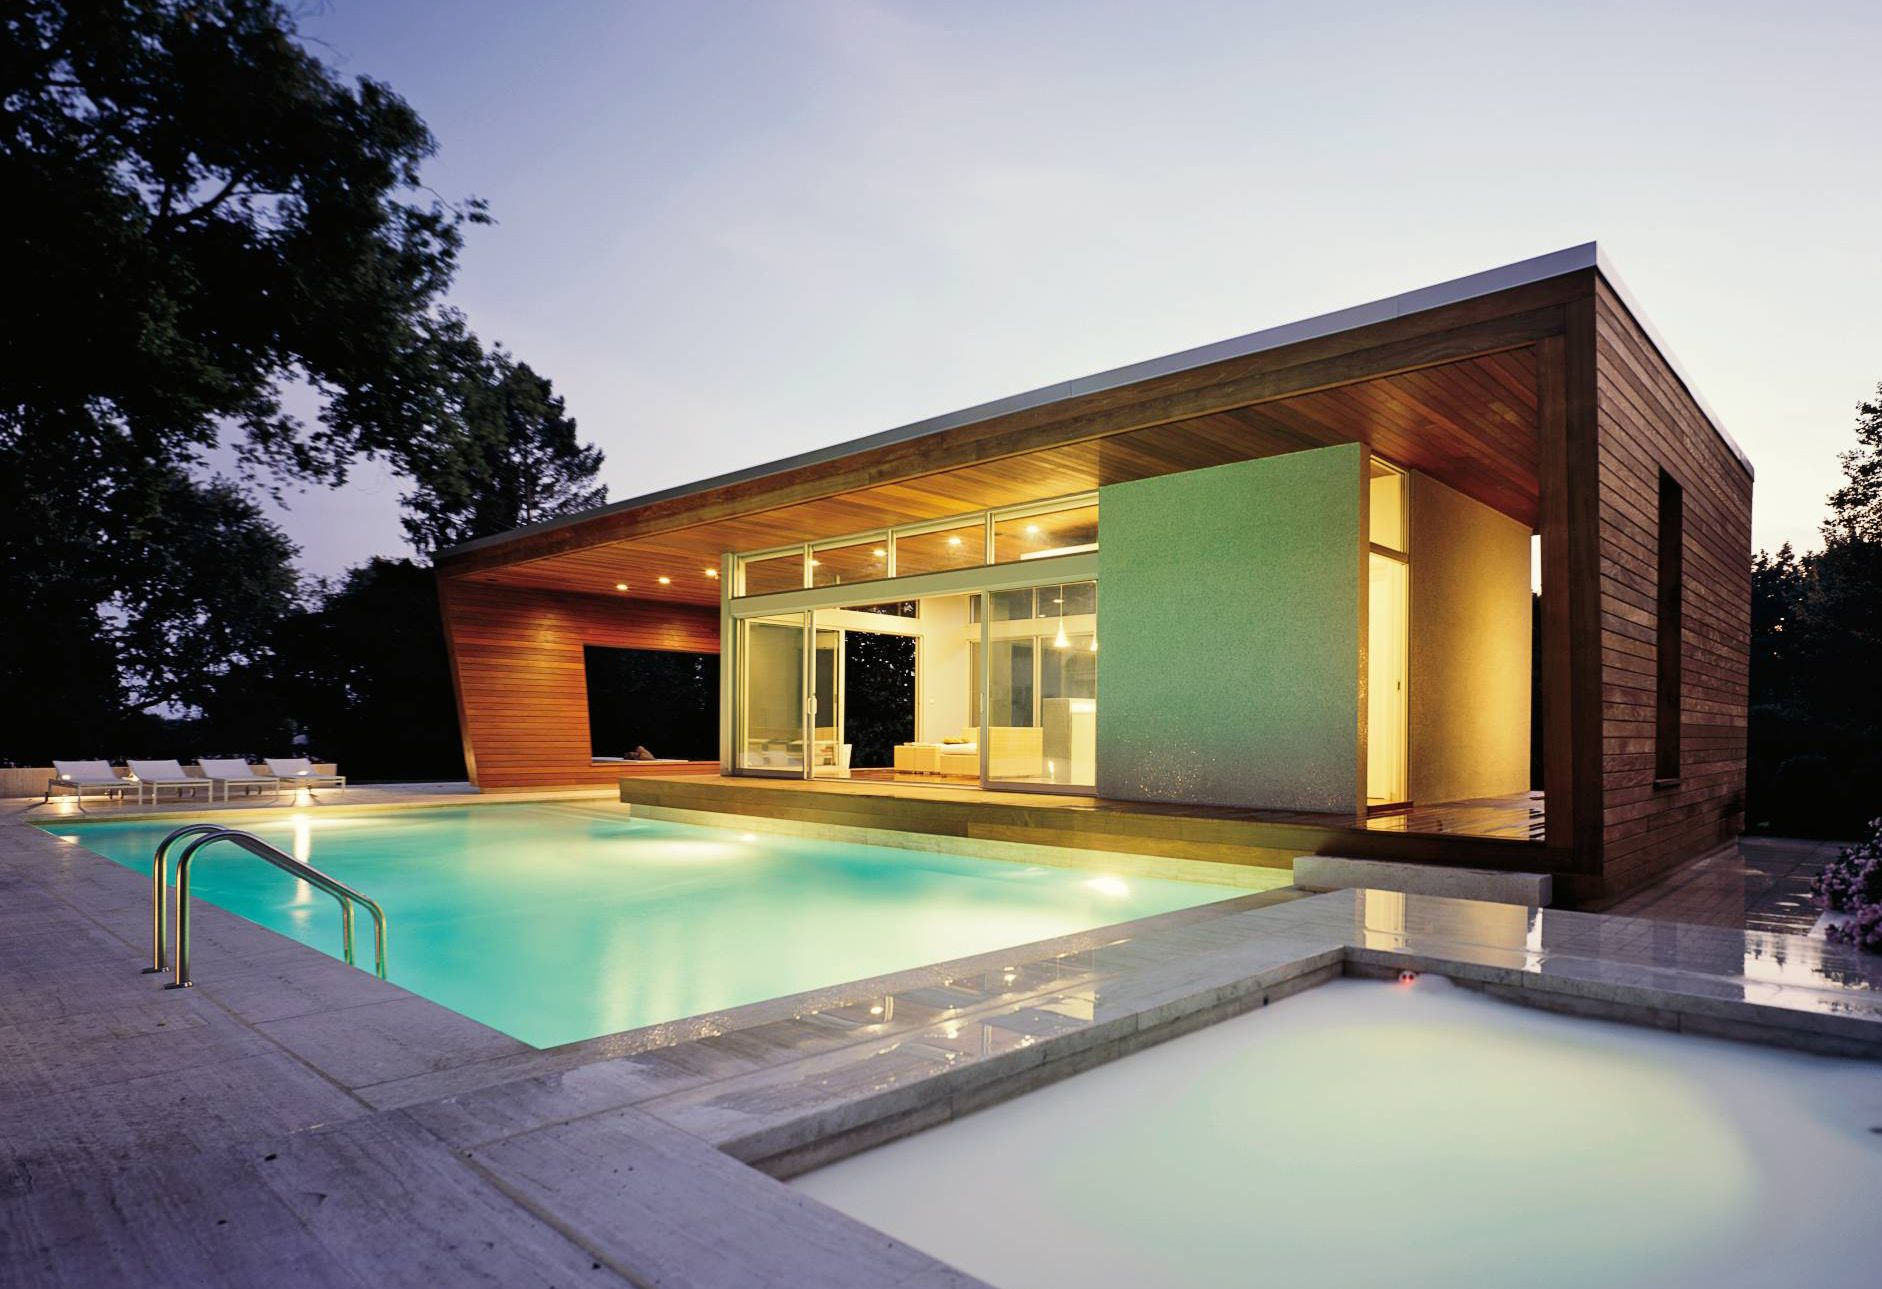 Swimming Pool Pool House Minimalist Design On Design Ideas